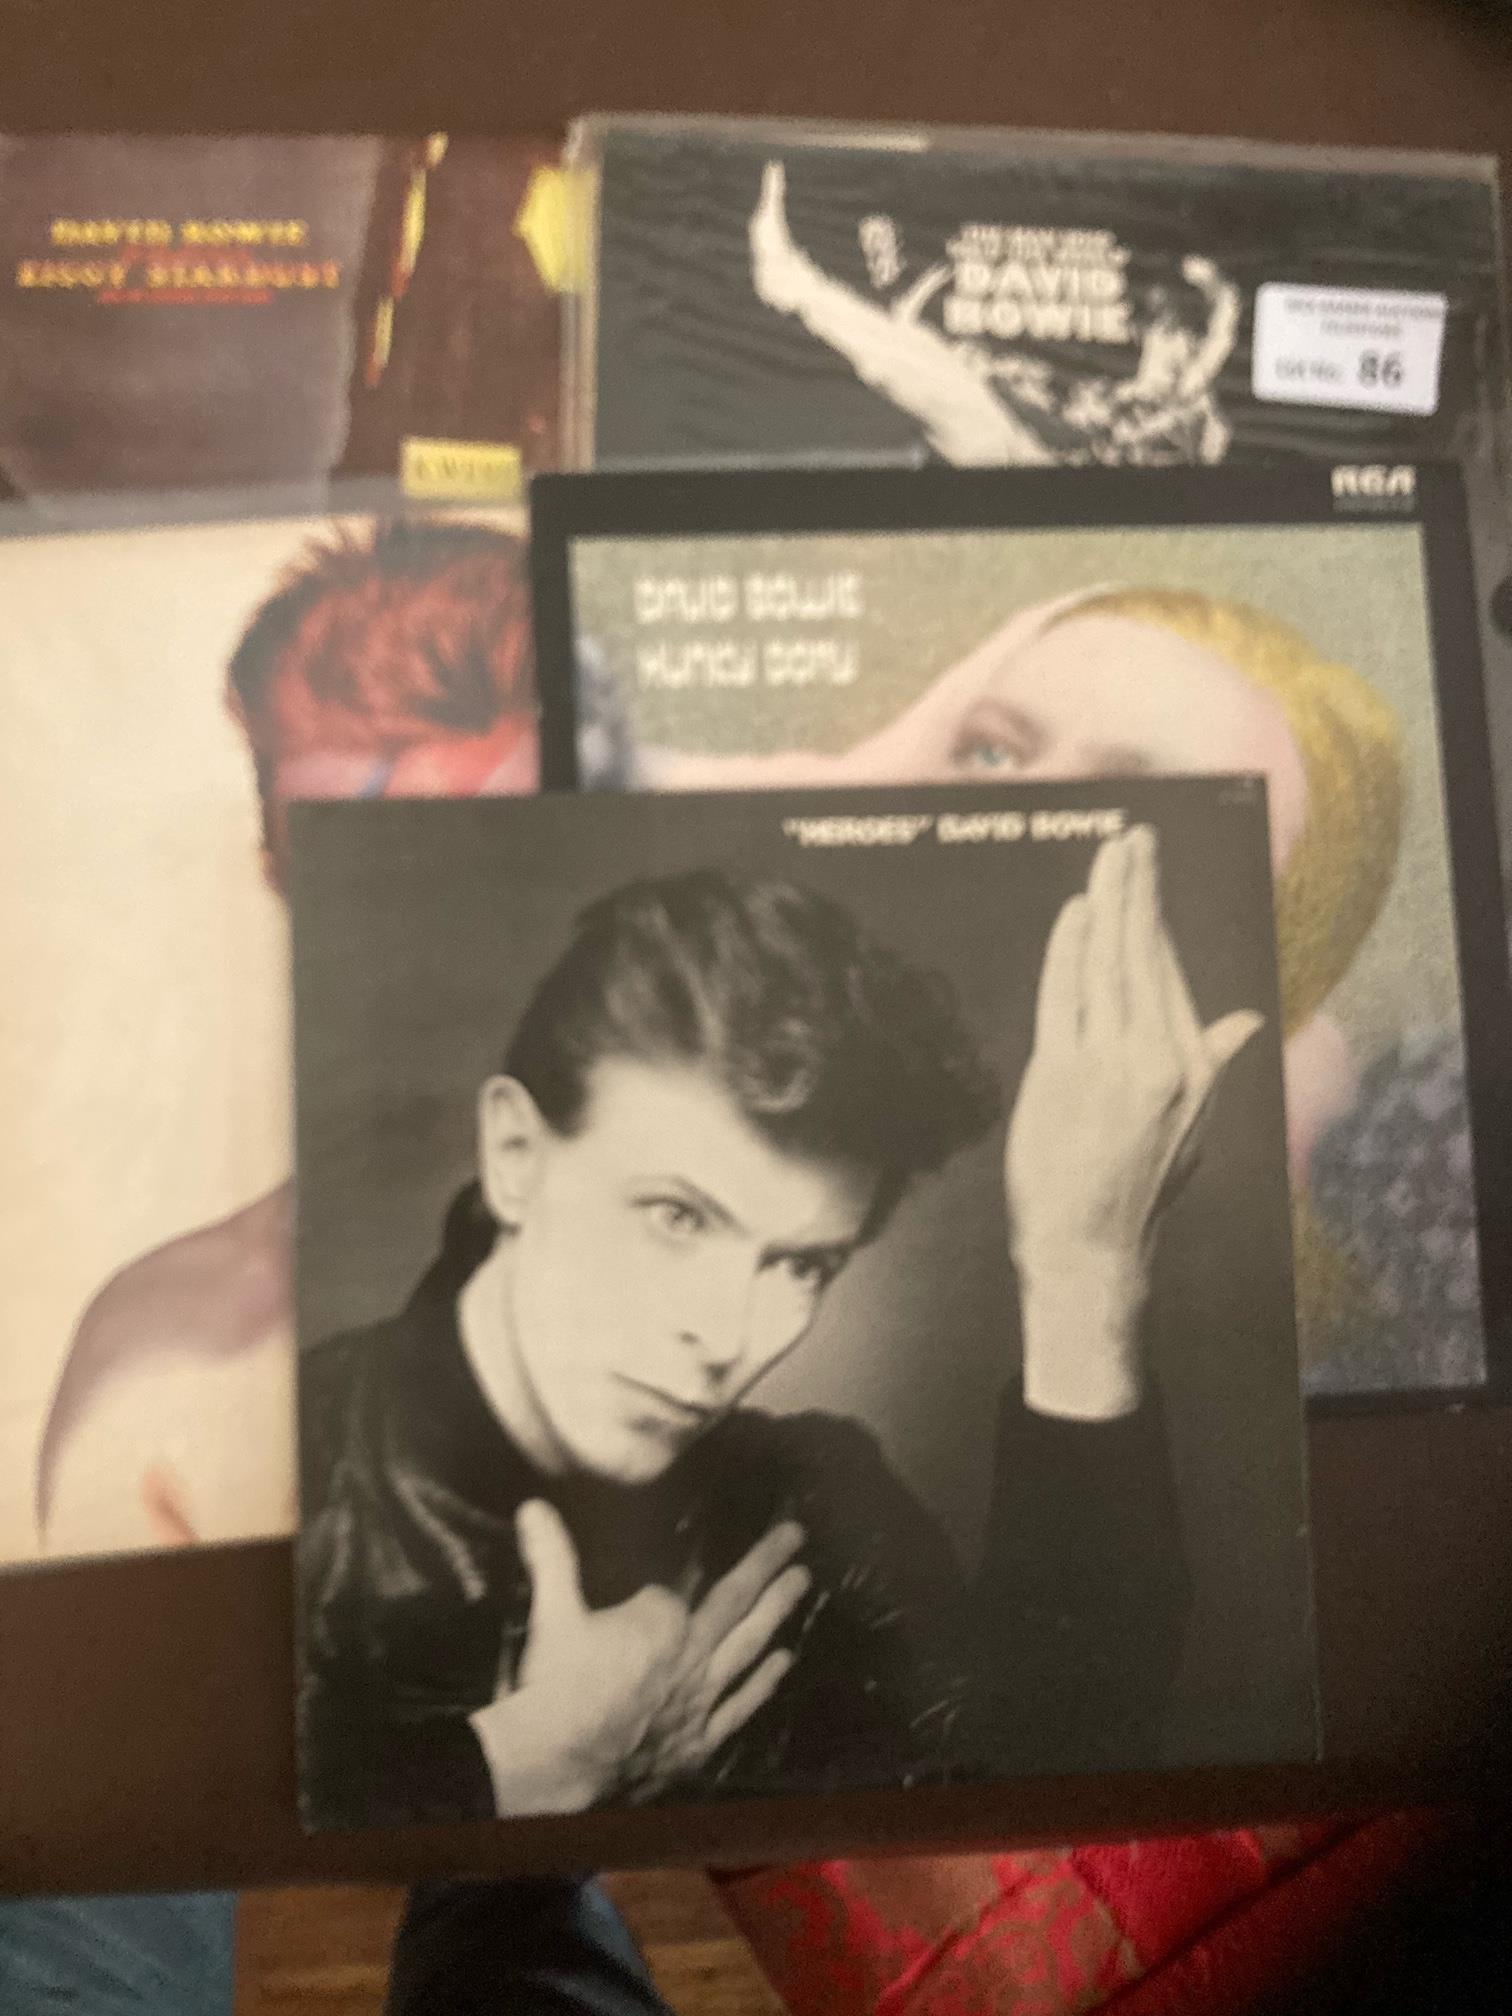 Records : DAVID BOWIE 5 great condition LP's - bar